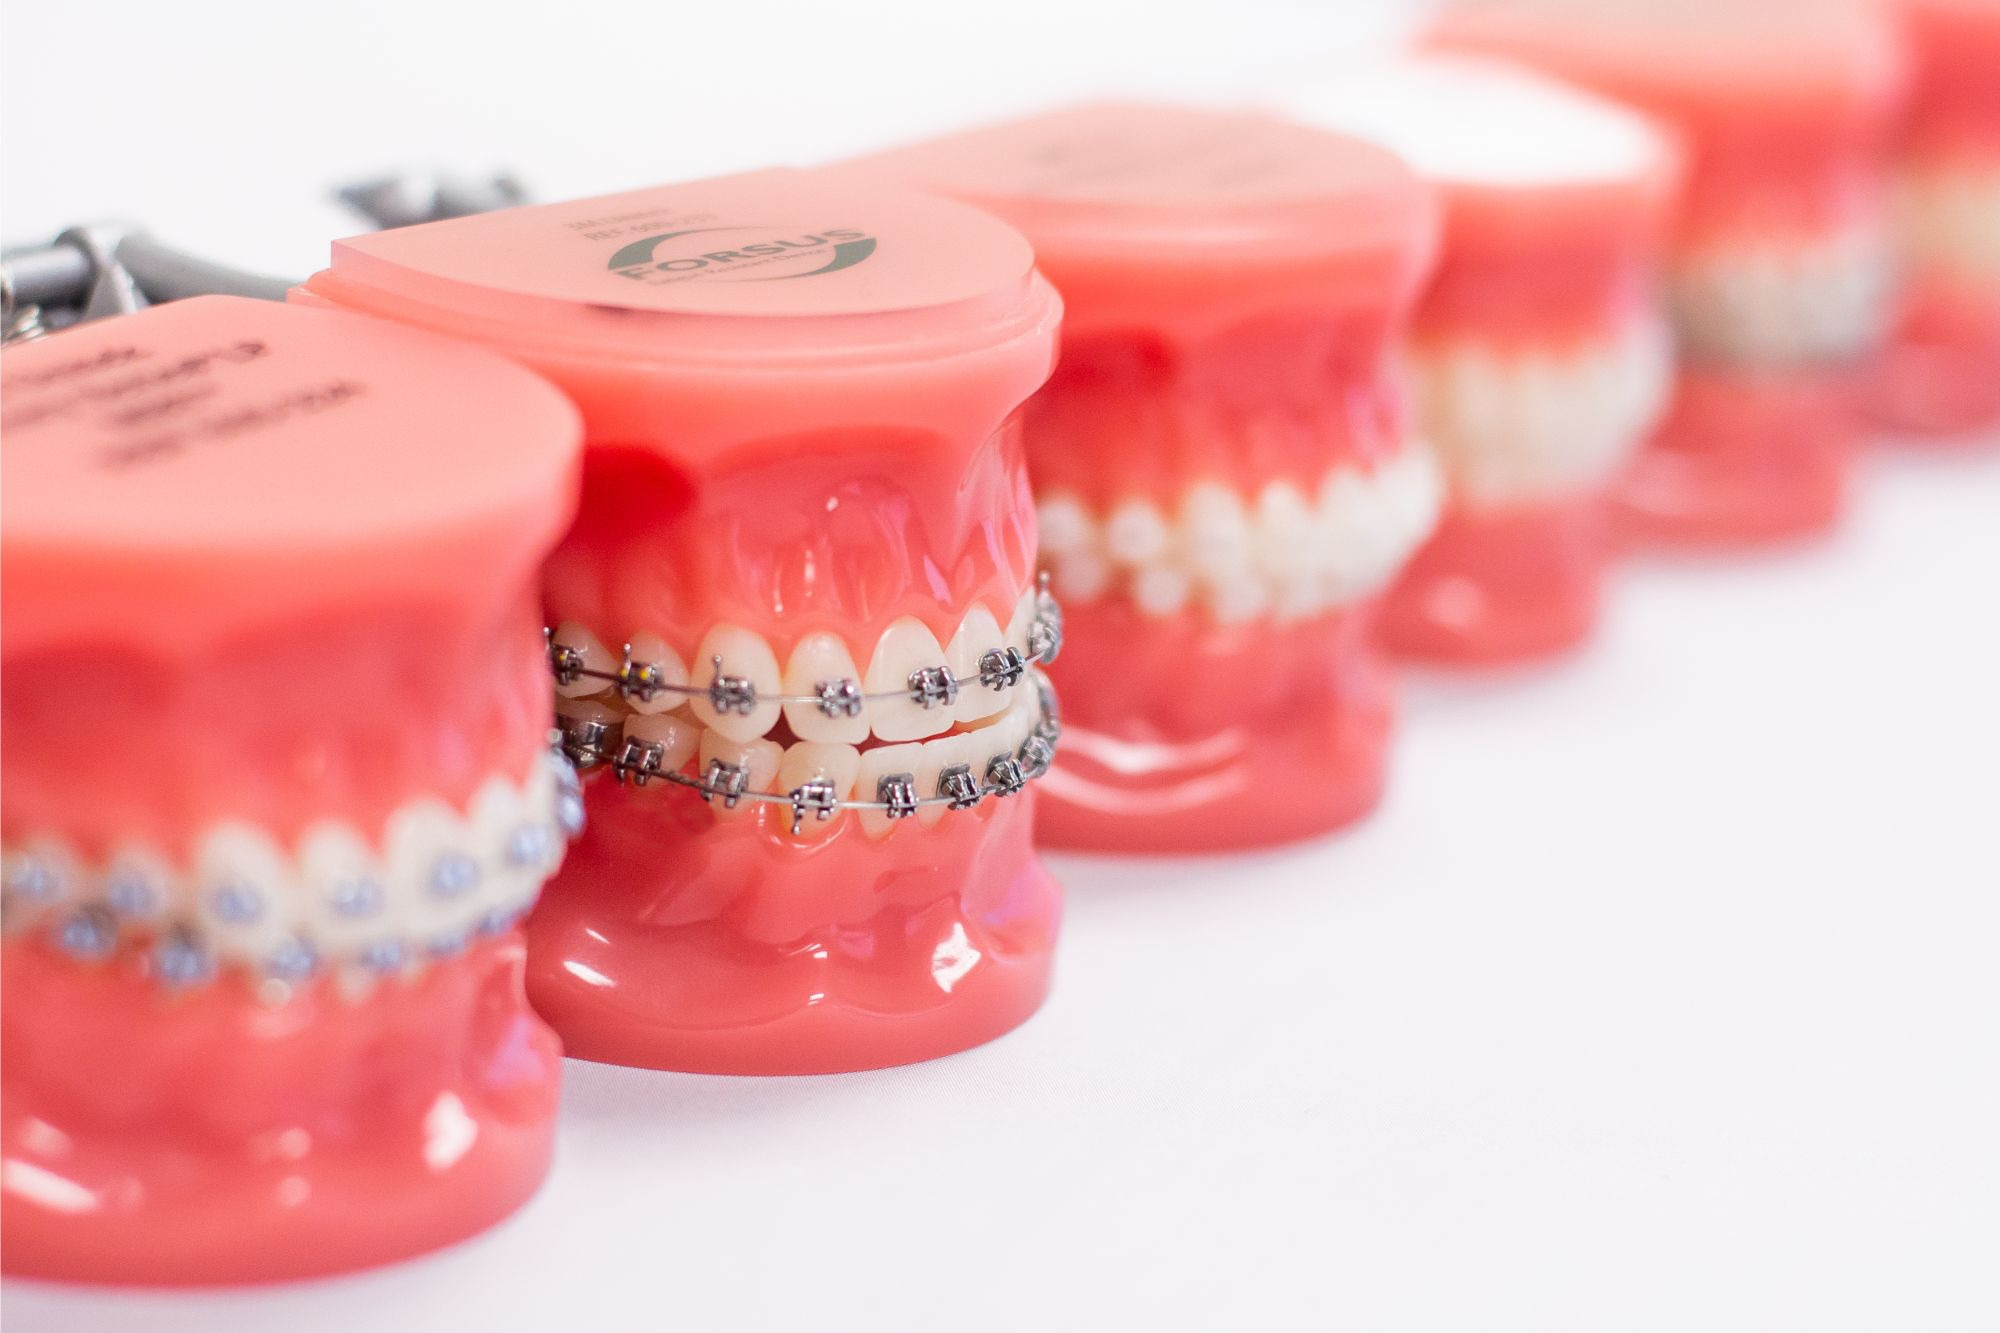 DIY orthodontic treatments